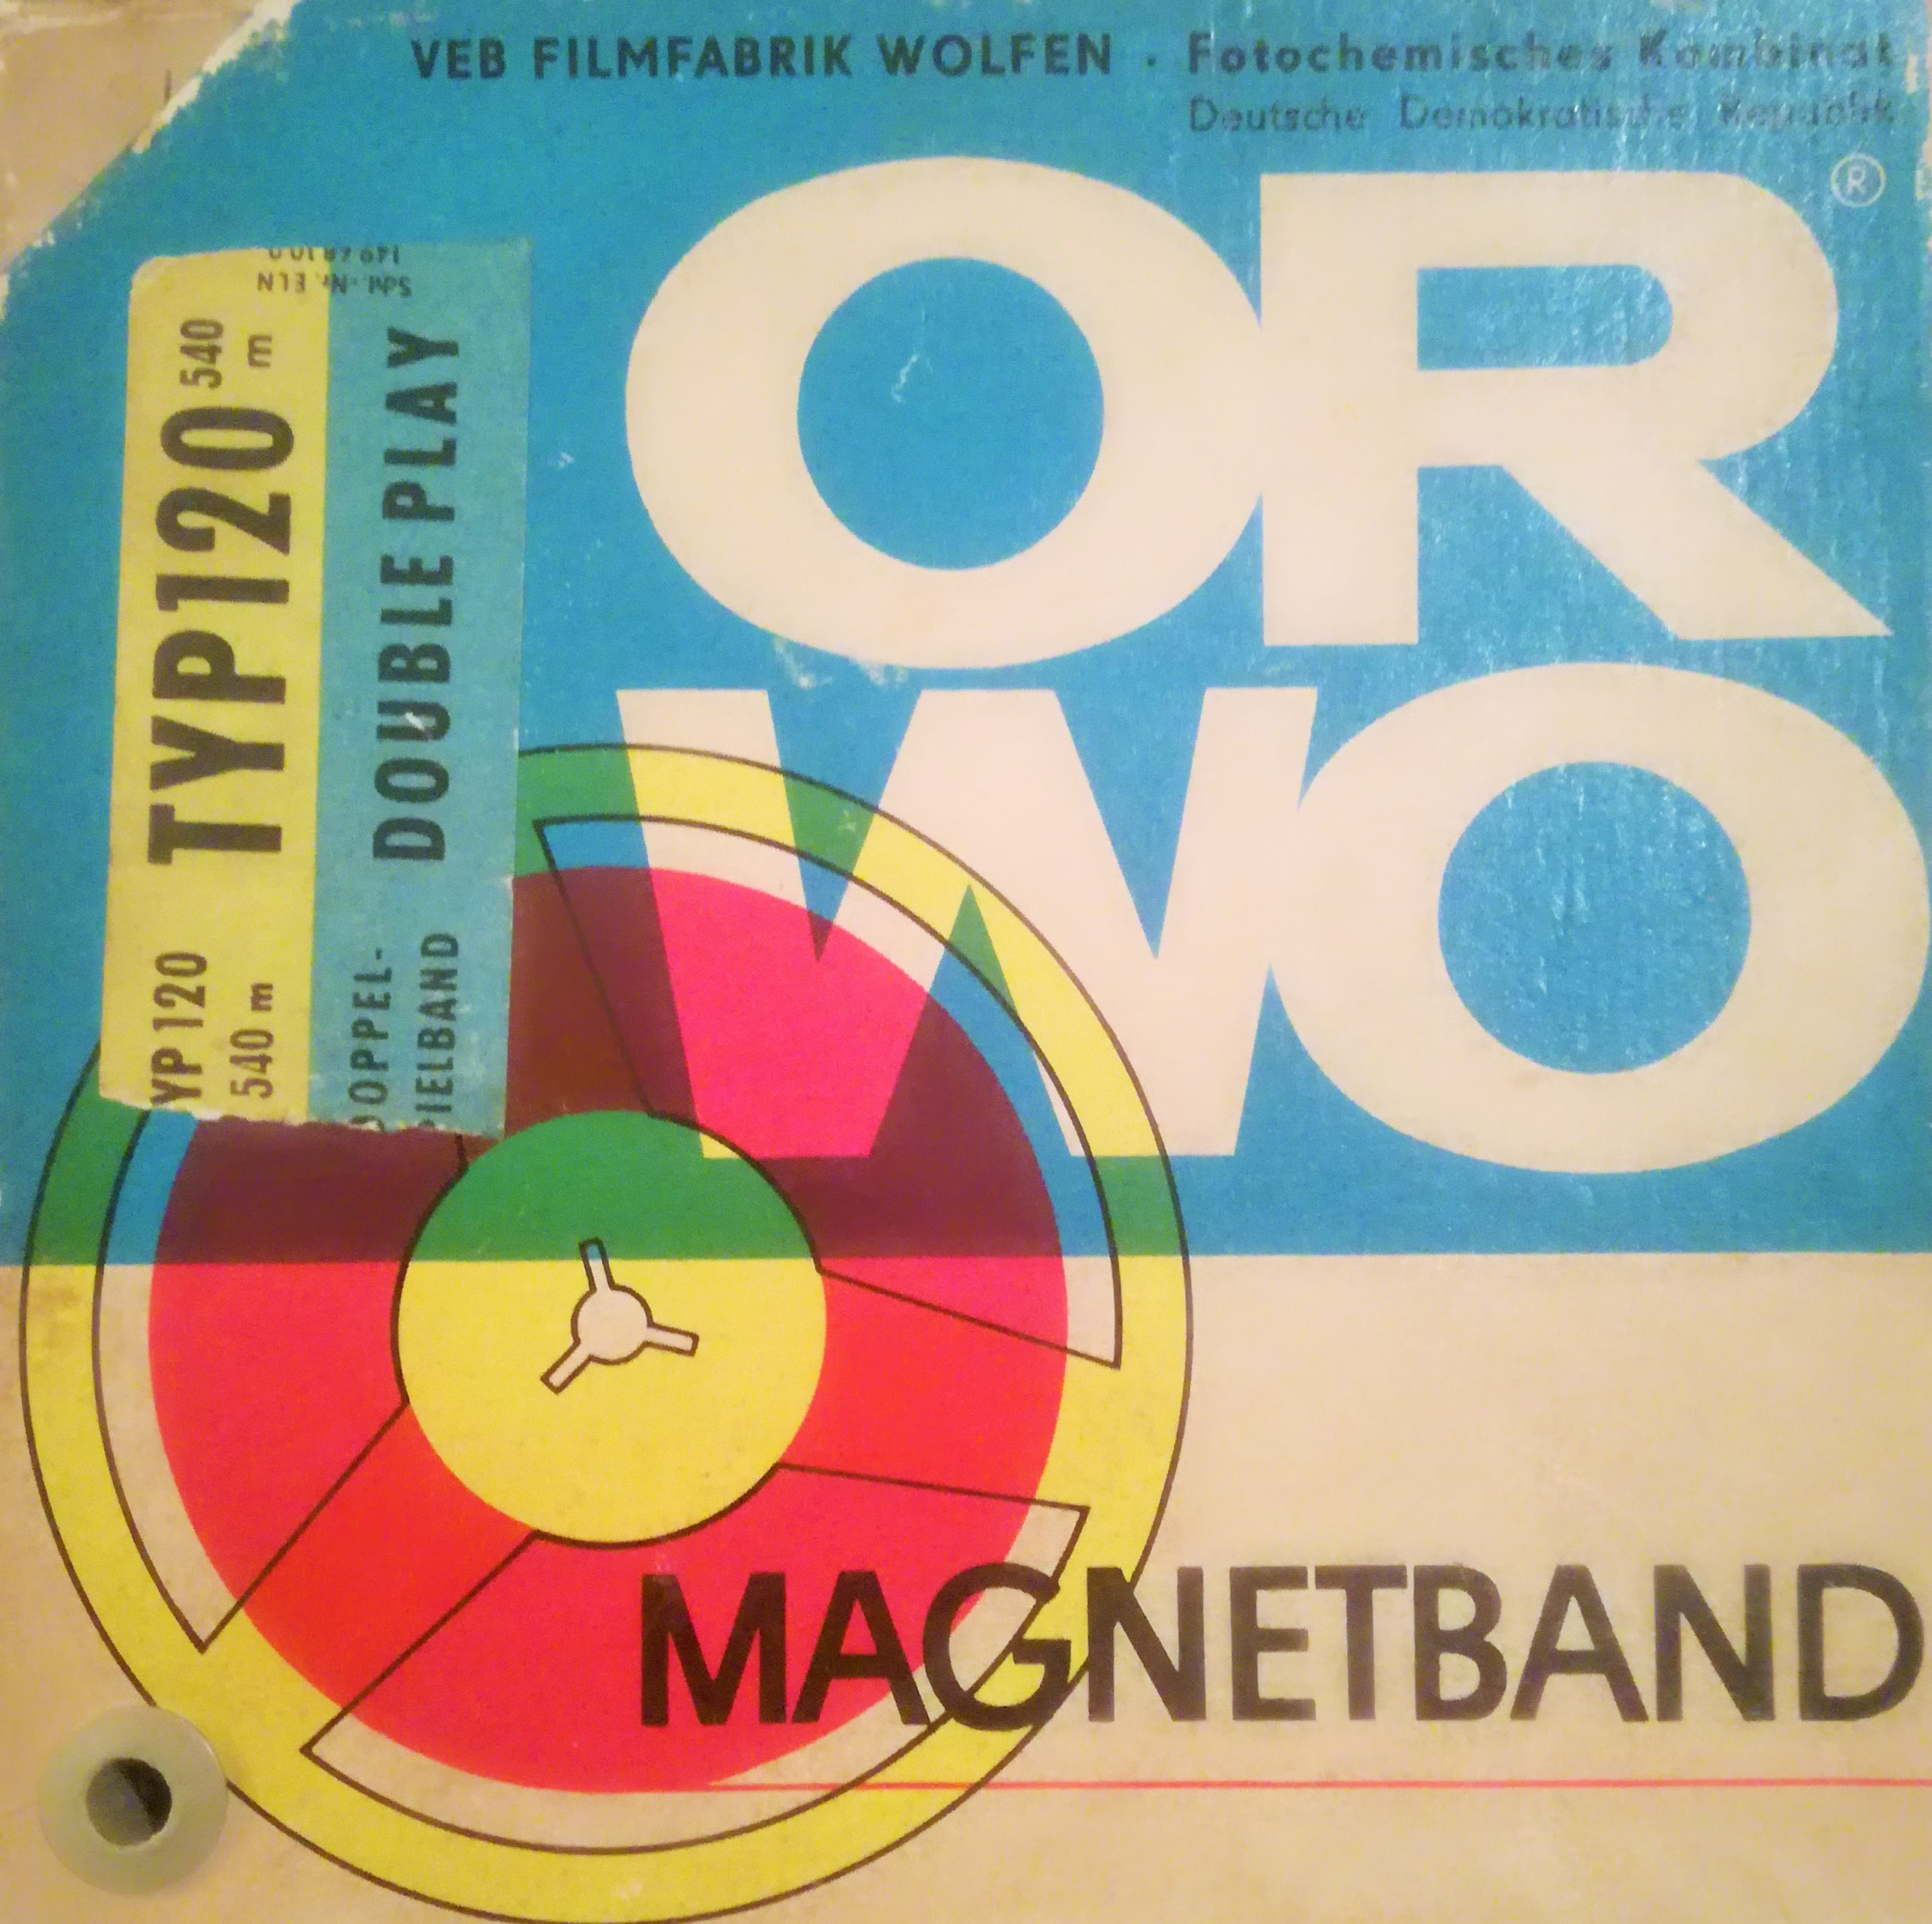 ORWO magnetic tape with Cat Radio recordings from the 1970s